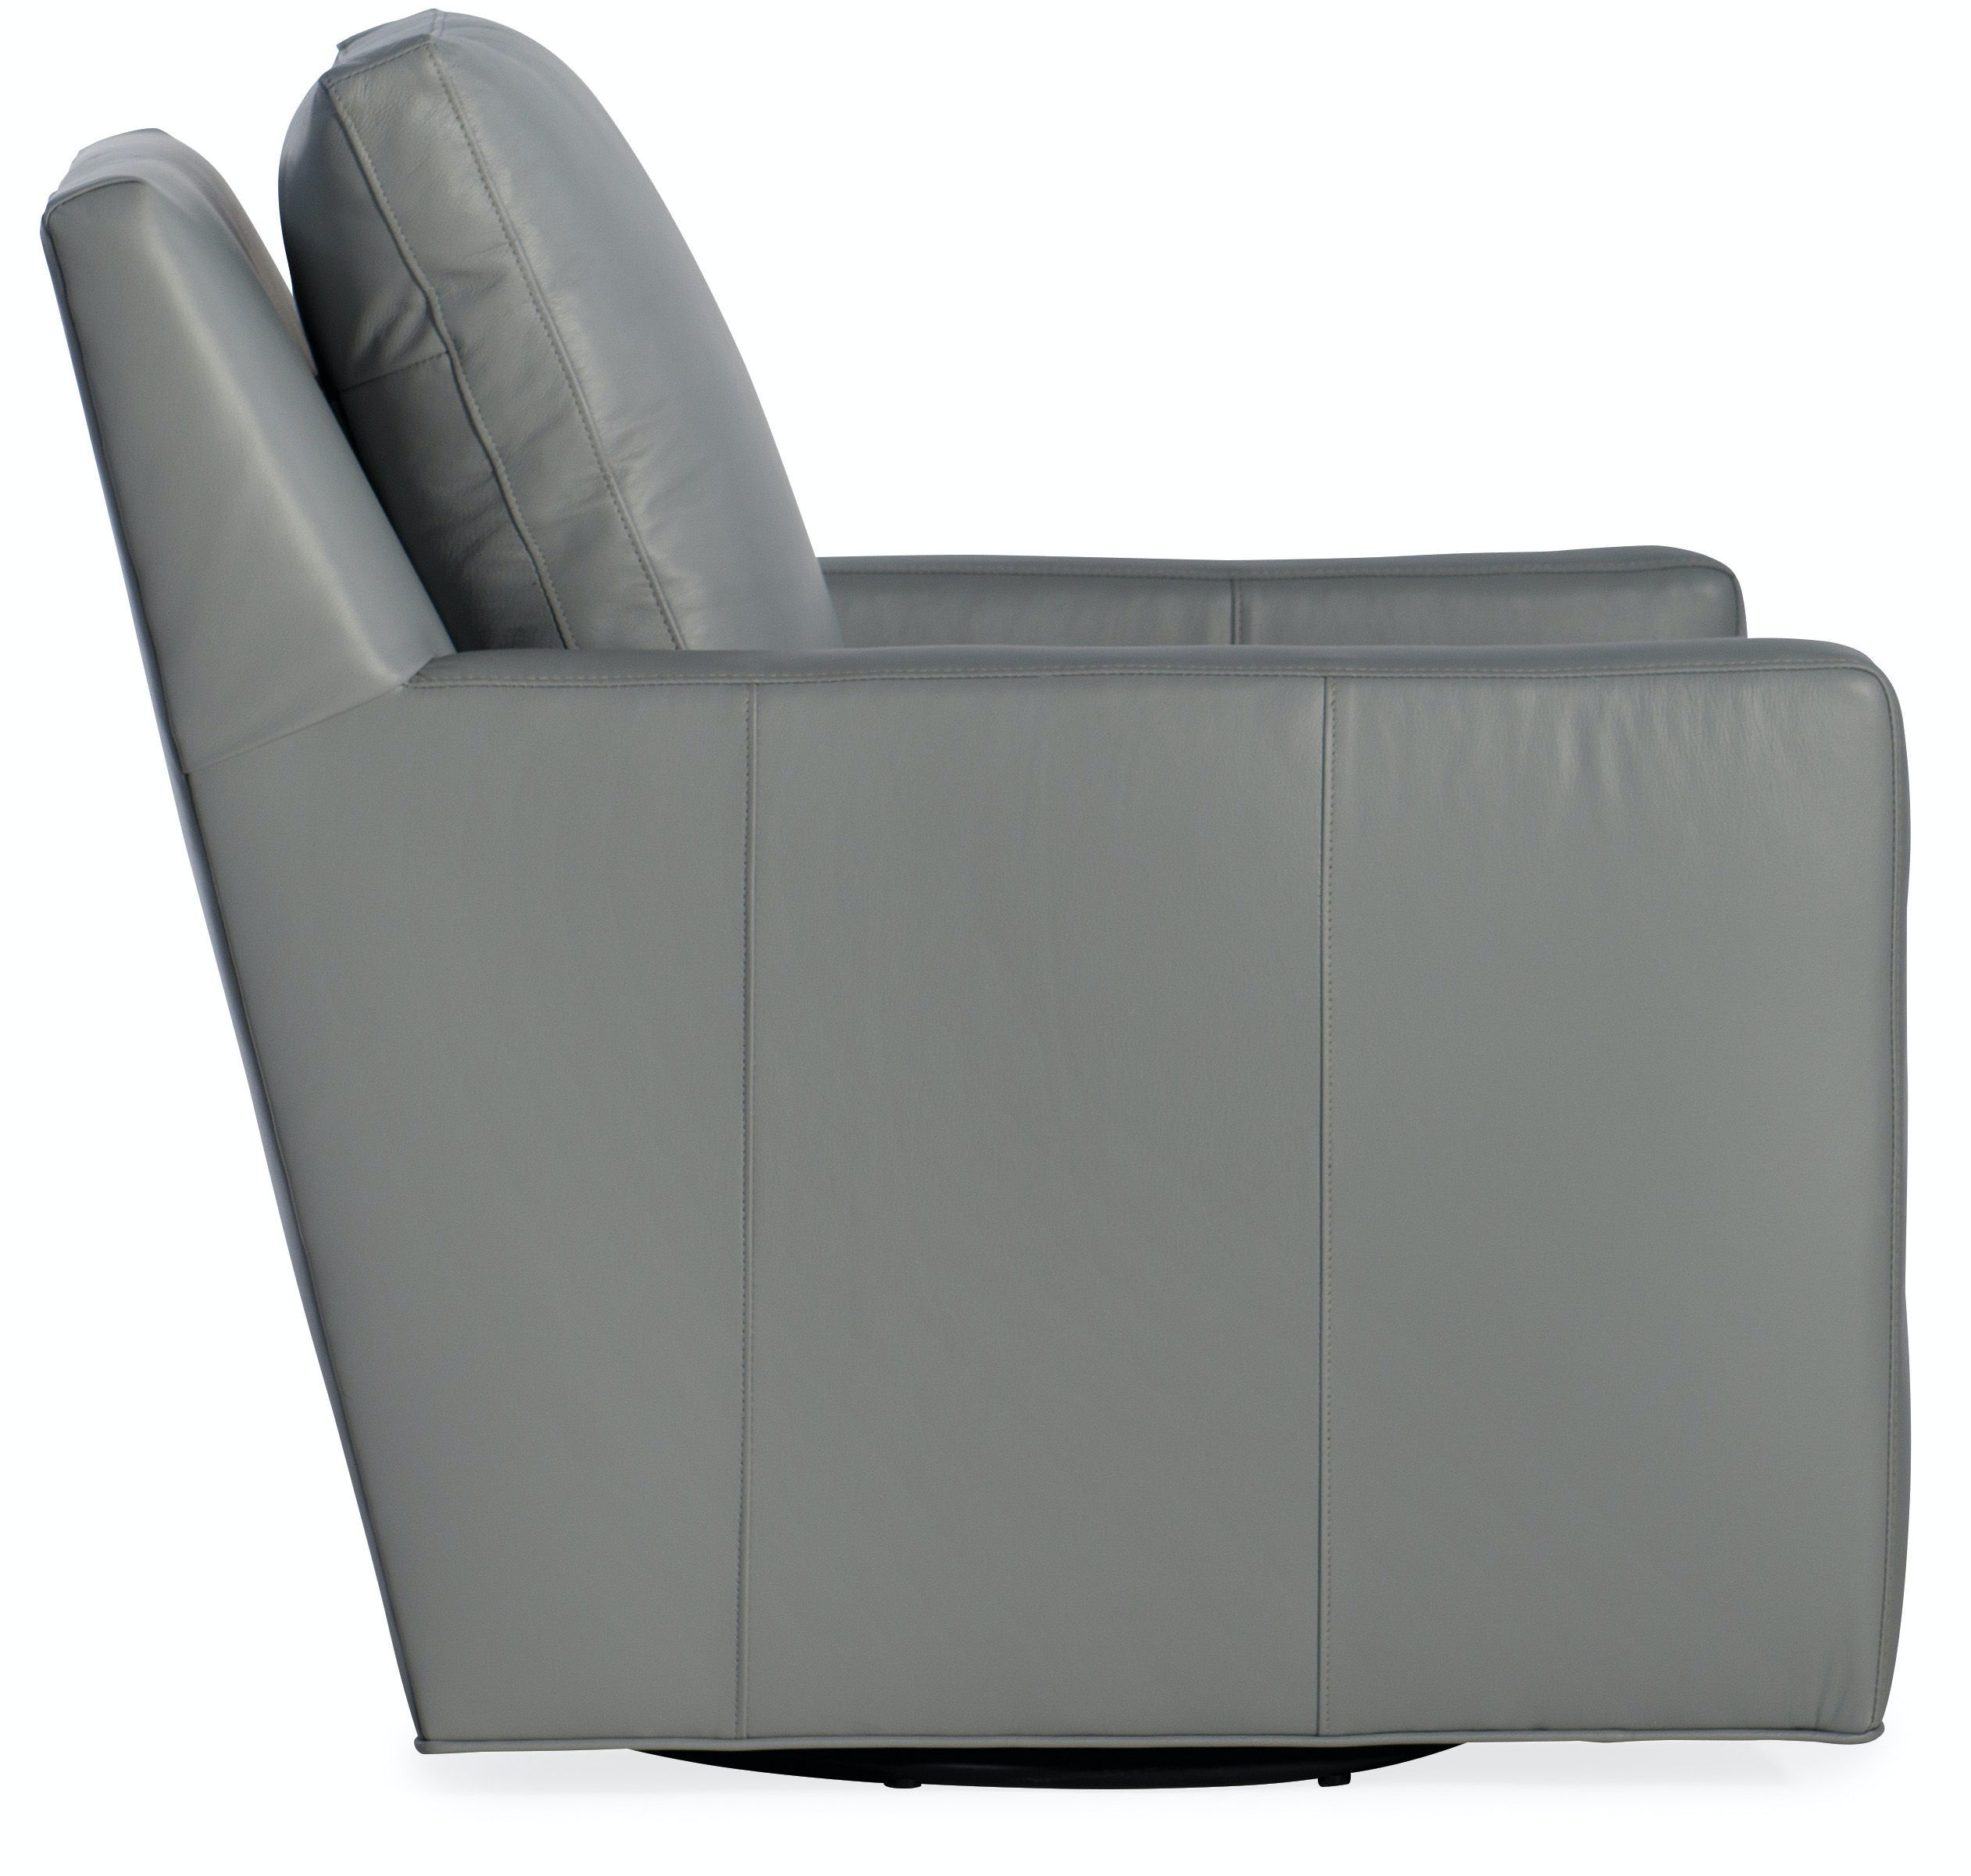 swivel tub chairs seat cushion for office chair bradington young living room jaxon 8 way tie 321 25sw